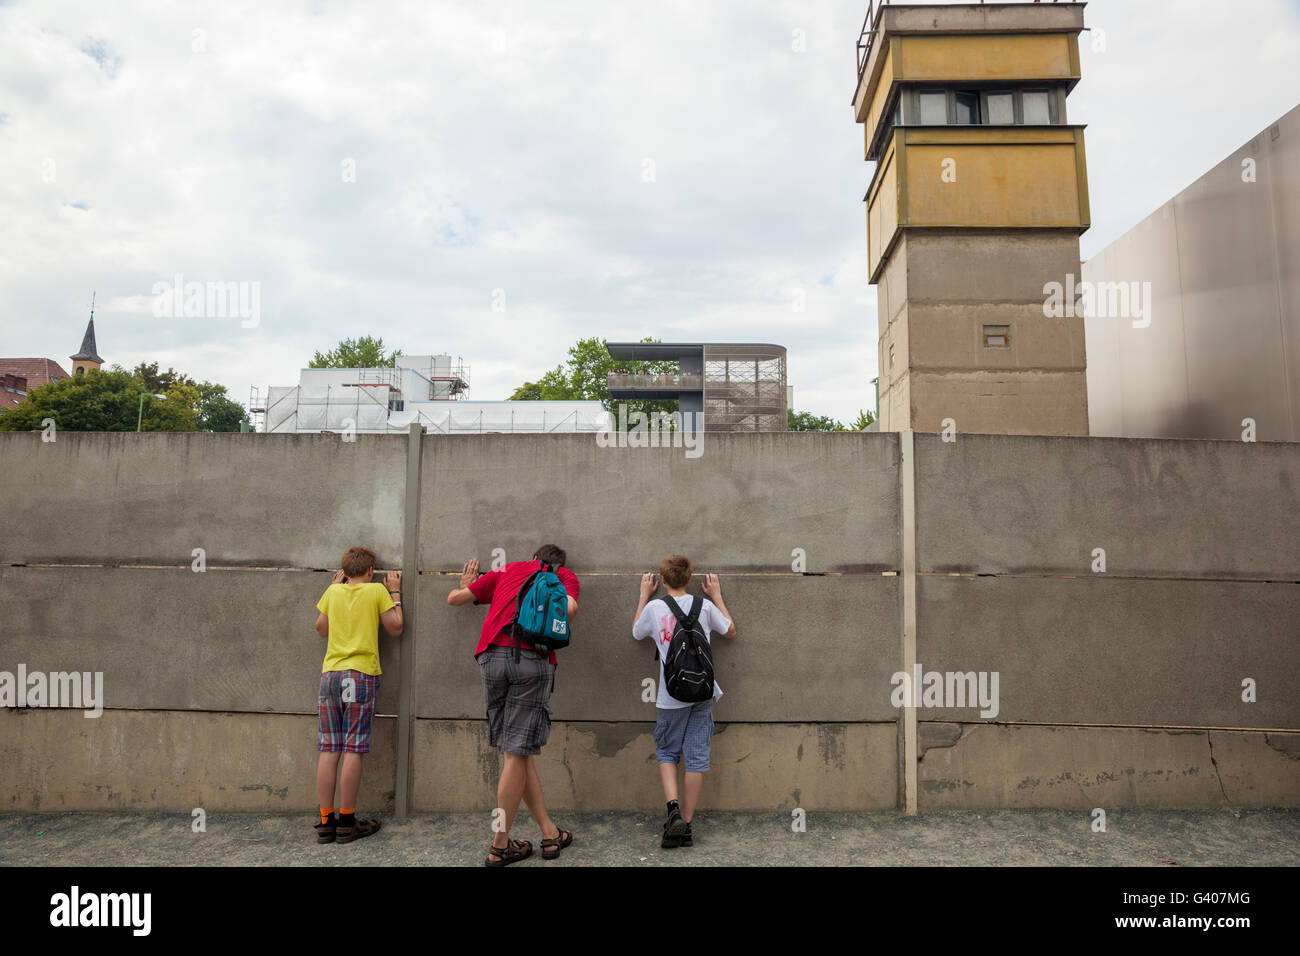 A family peeking through the Berlin wall memorial. - Stock Image